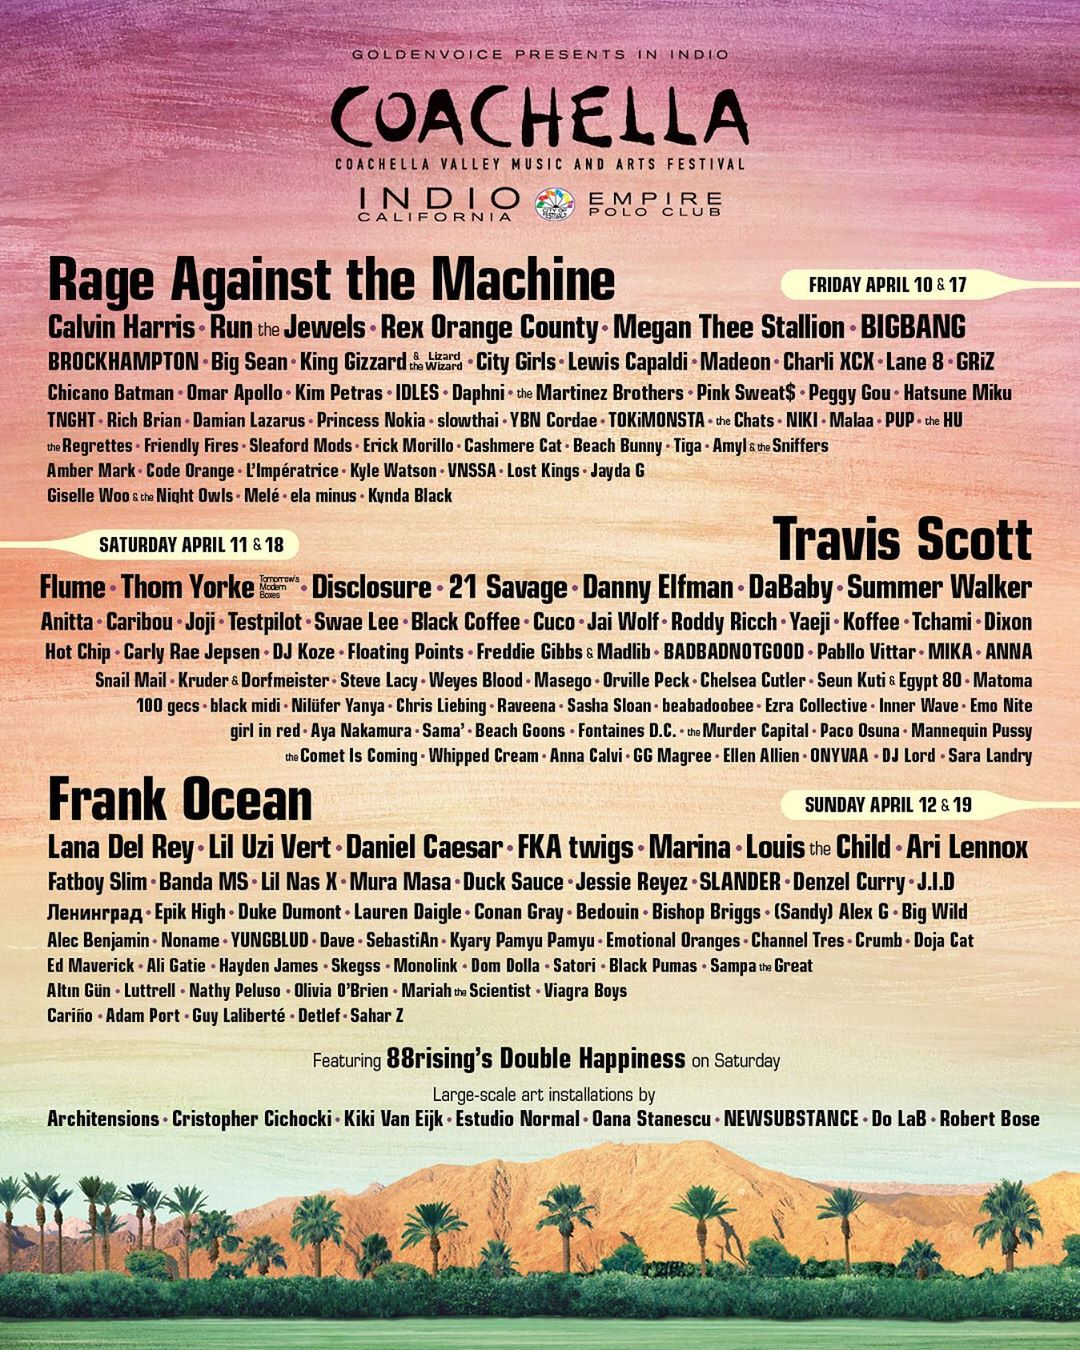 Line-up do festival Coachella 2020. (Foto: Instagram/@coachella)